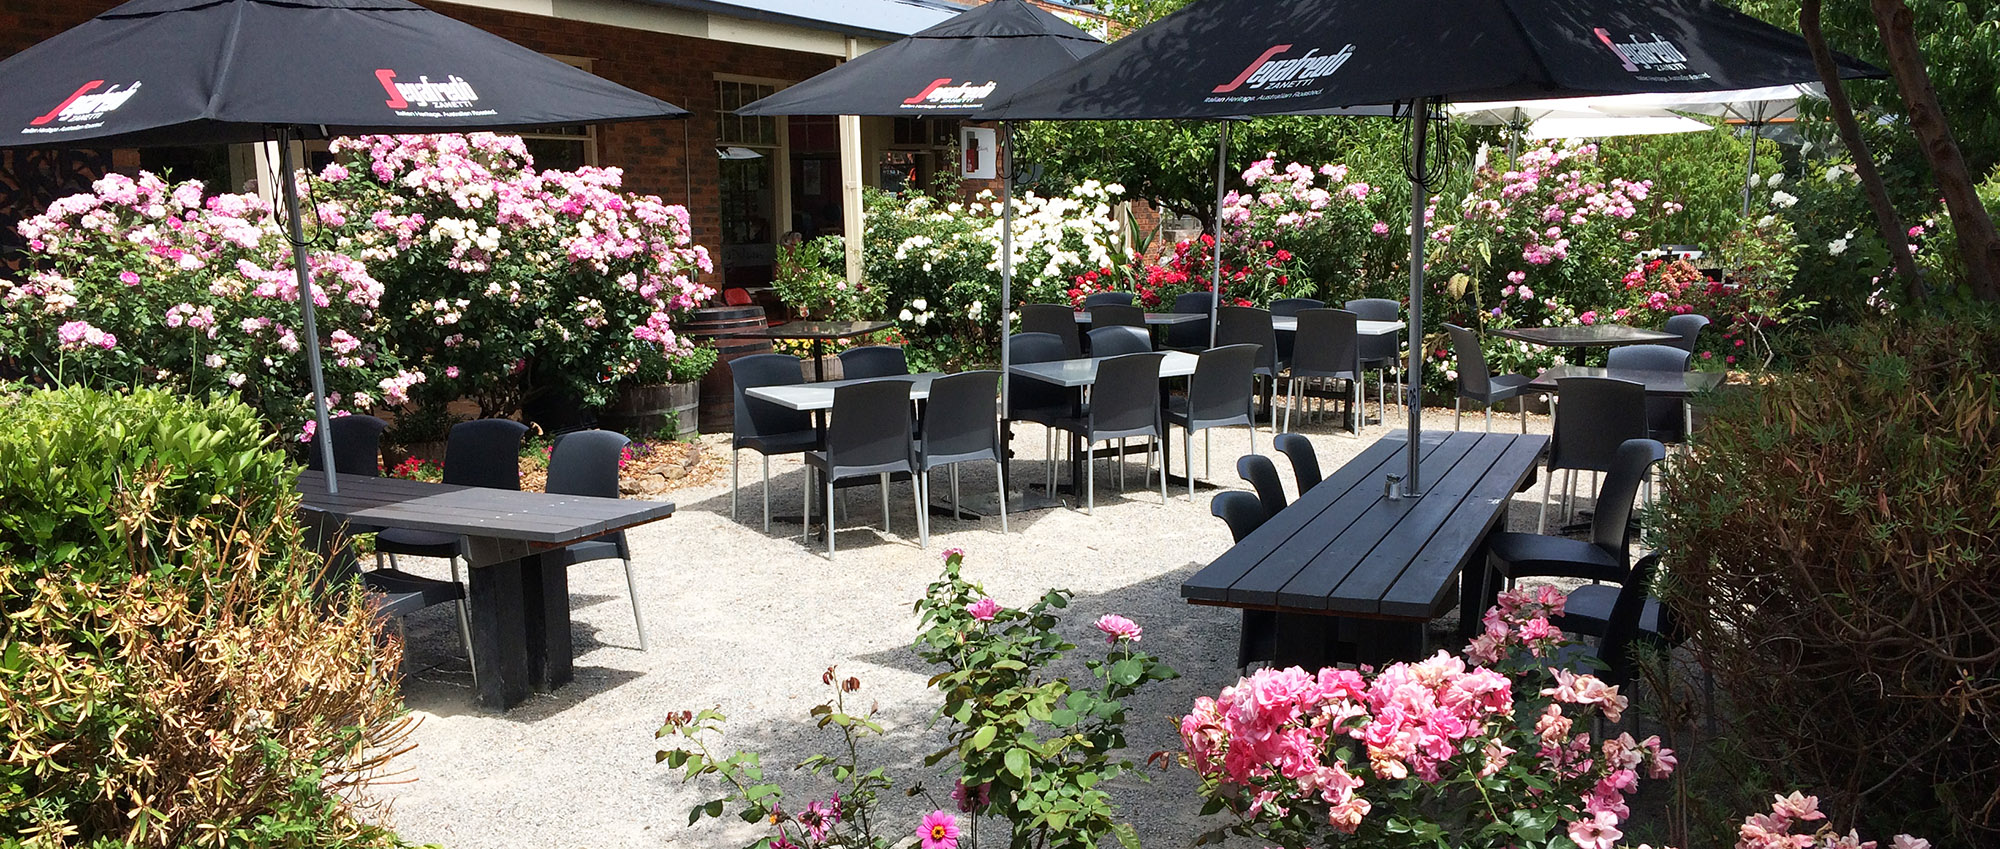 Yarra Glen Cafe Outdoor Dining Area